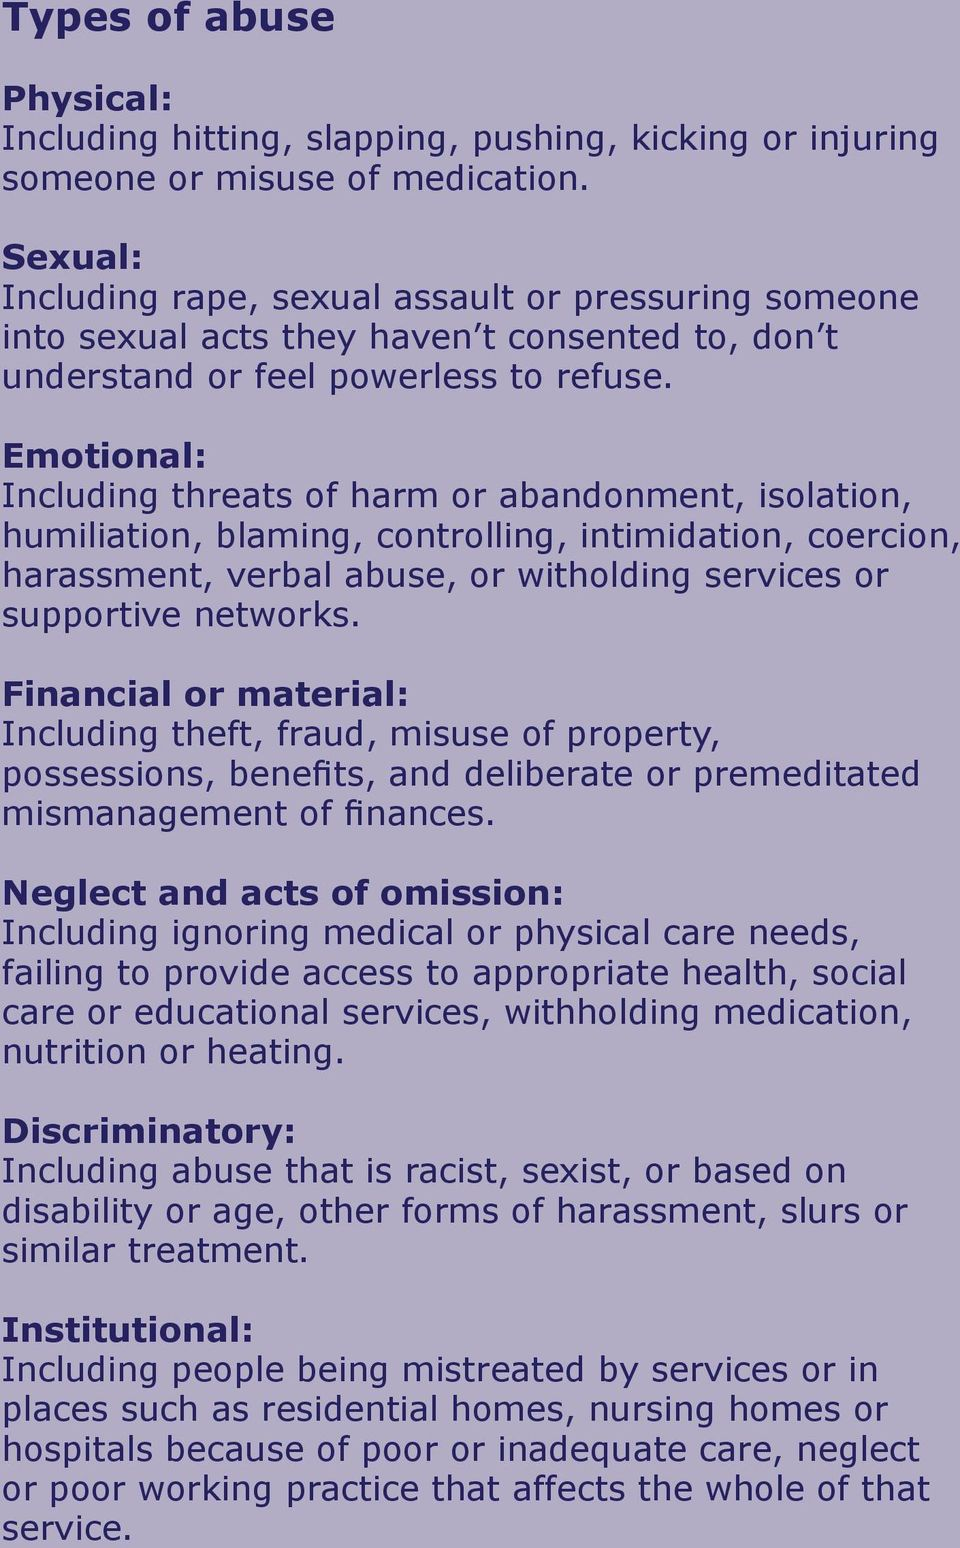 Emotional: Including threats of harm or abandonment, isolation, humiliation, blaming, controlling, intimidation, coercion, harassment, verbal abuse, or witholding services or supportive networks.